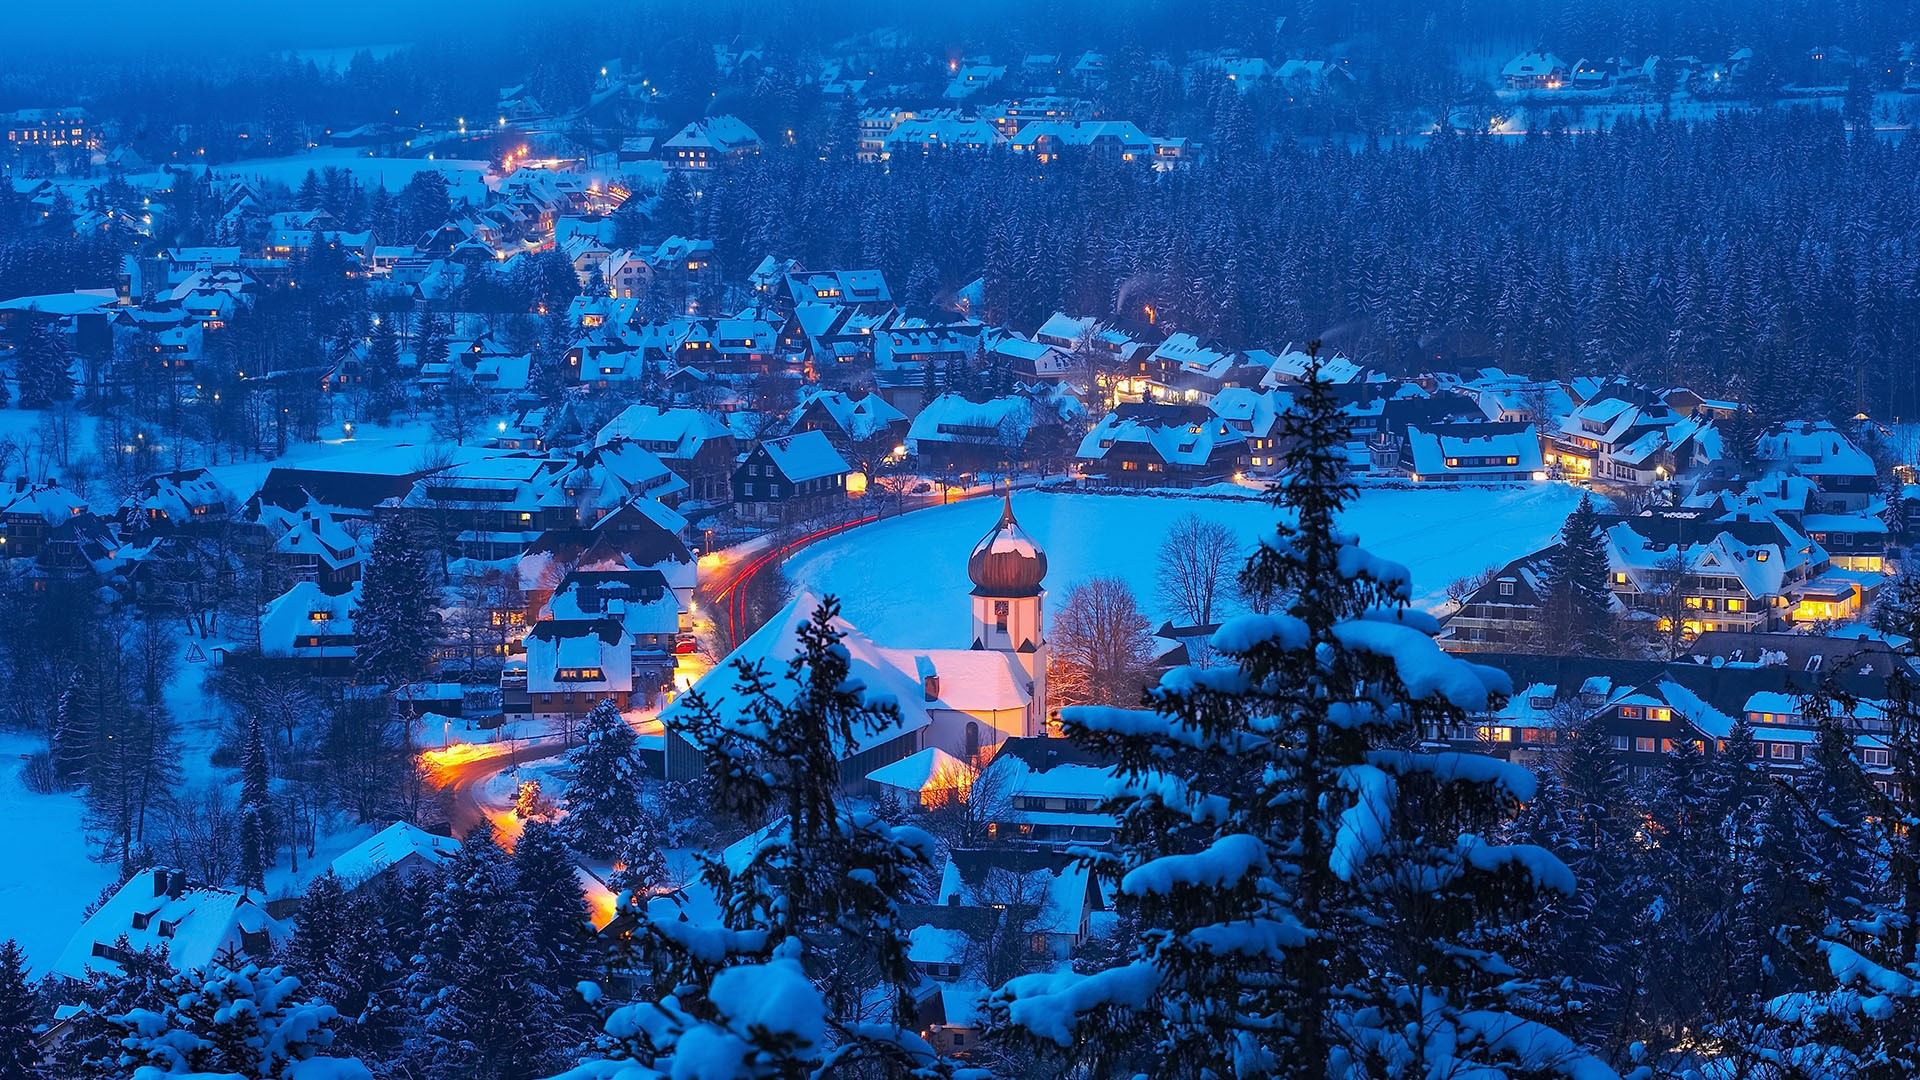 General 1920x1080 Hinterzarten Black forest Baden-Württemberg Germany snow snow covered city night winter blue